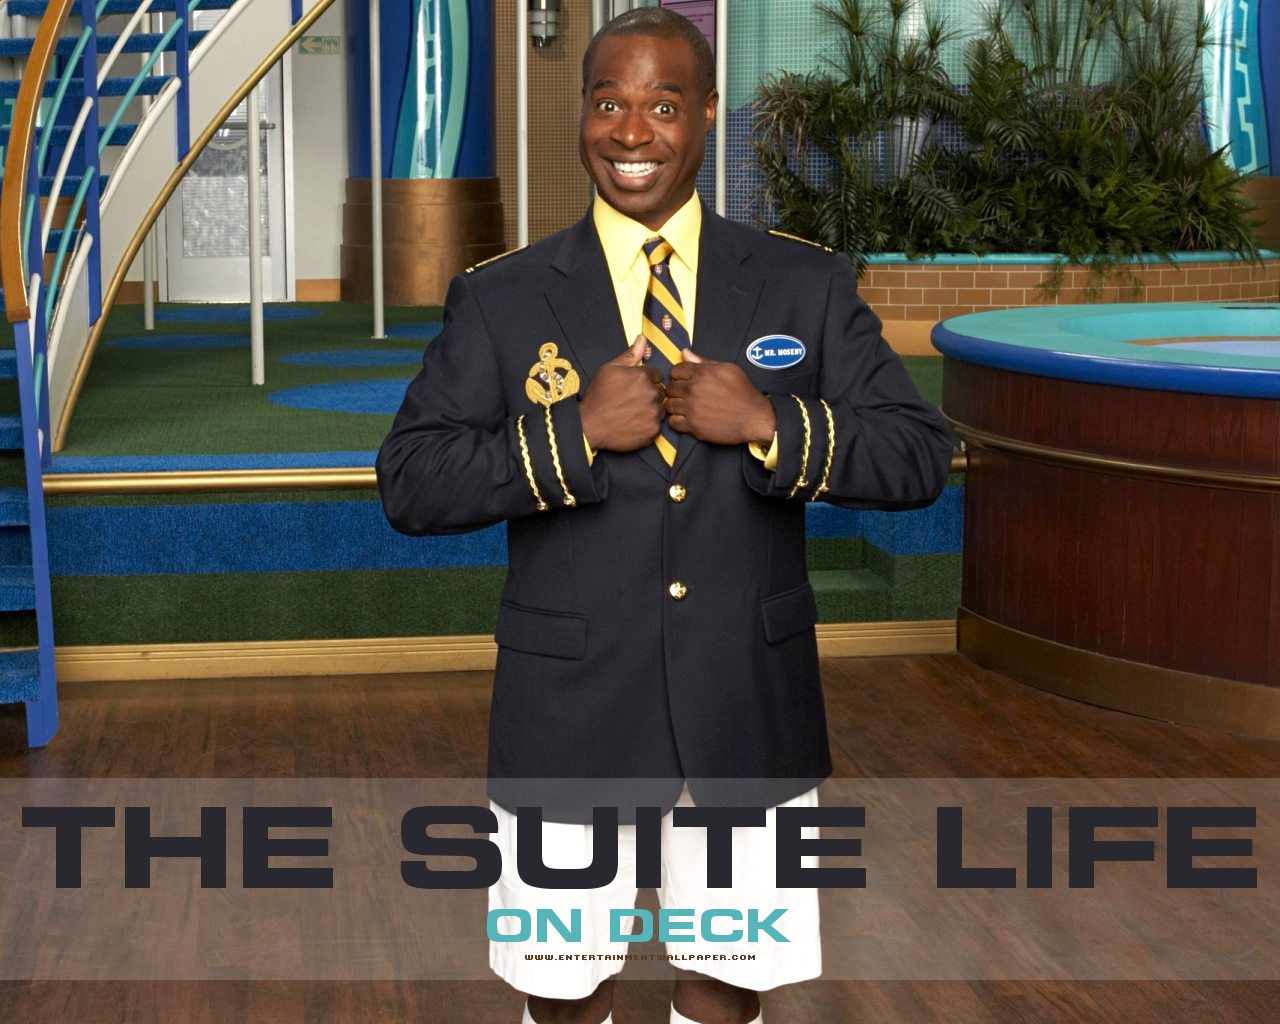 Congratulate, Icarley naked and suite life on deck naked